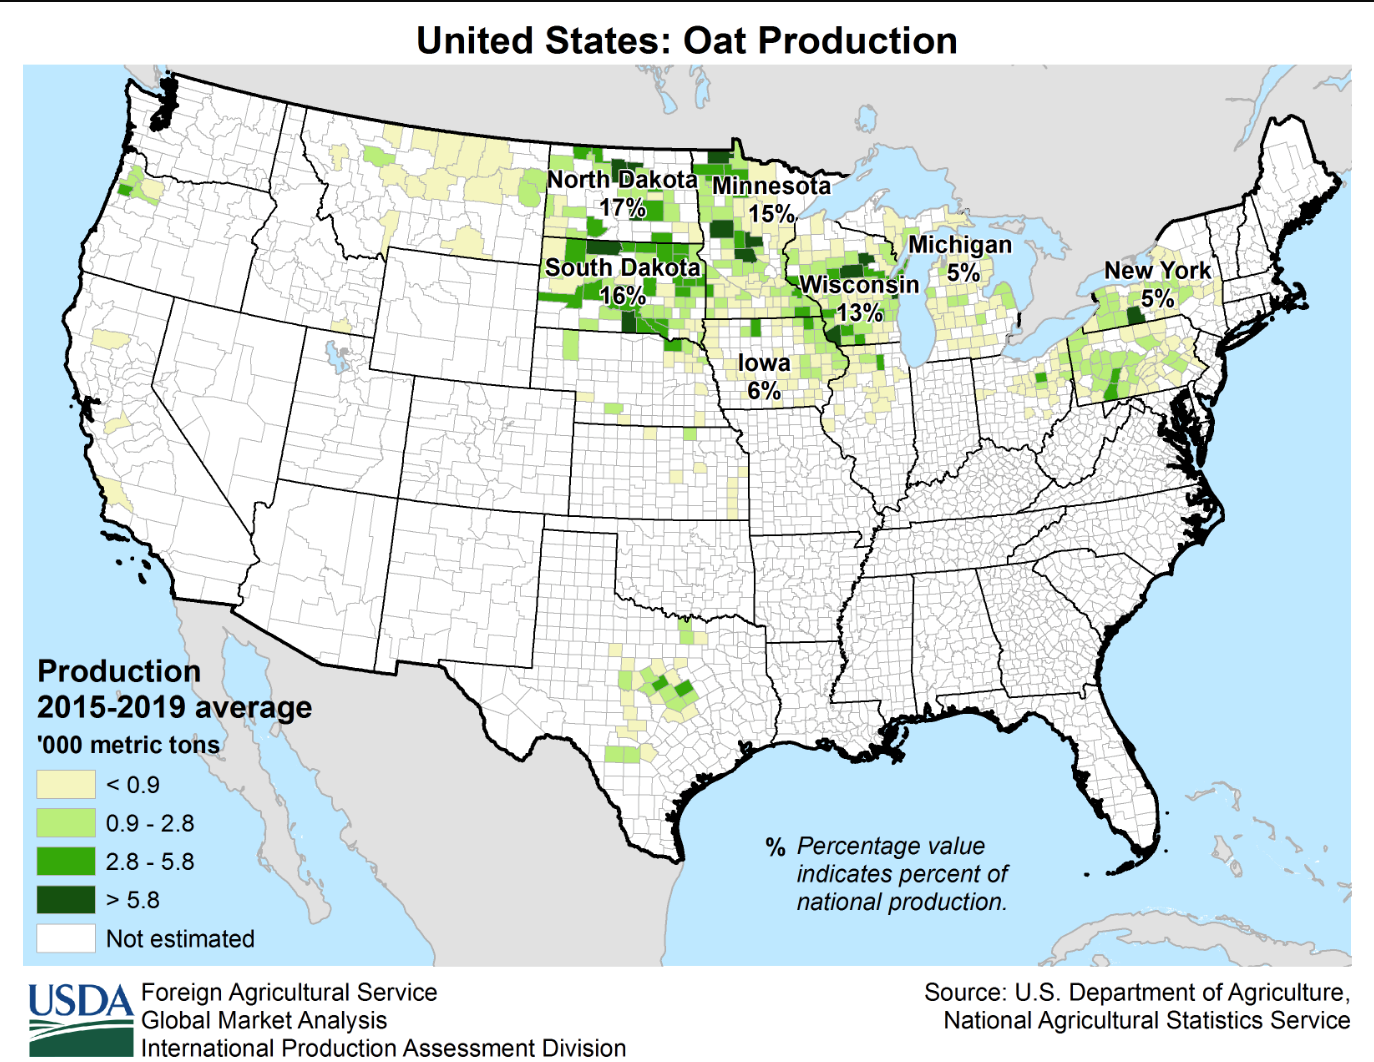 Map showing United States barley production 5 year average from 2012 to 2016.